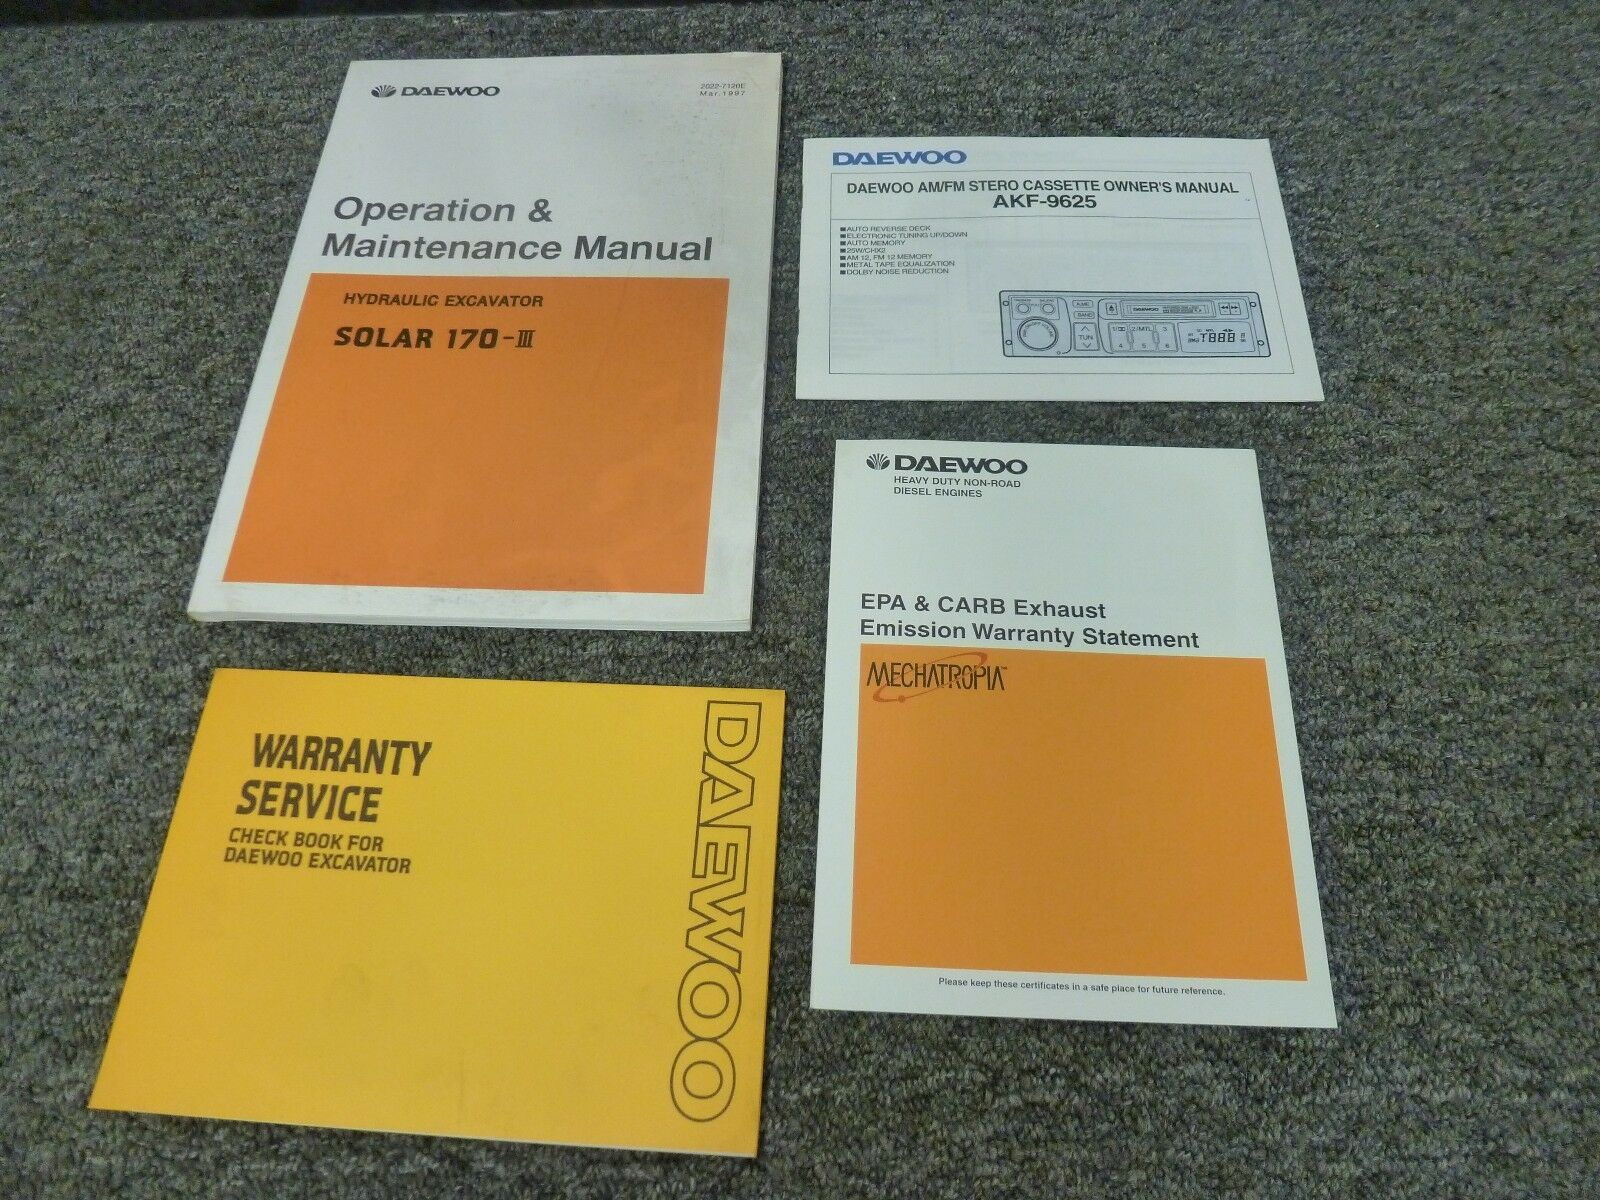 Daewoo Solar 170-III Hydraulic Excavator Owner Operator Maintenance Manual  1 of 1Only 1 available ...